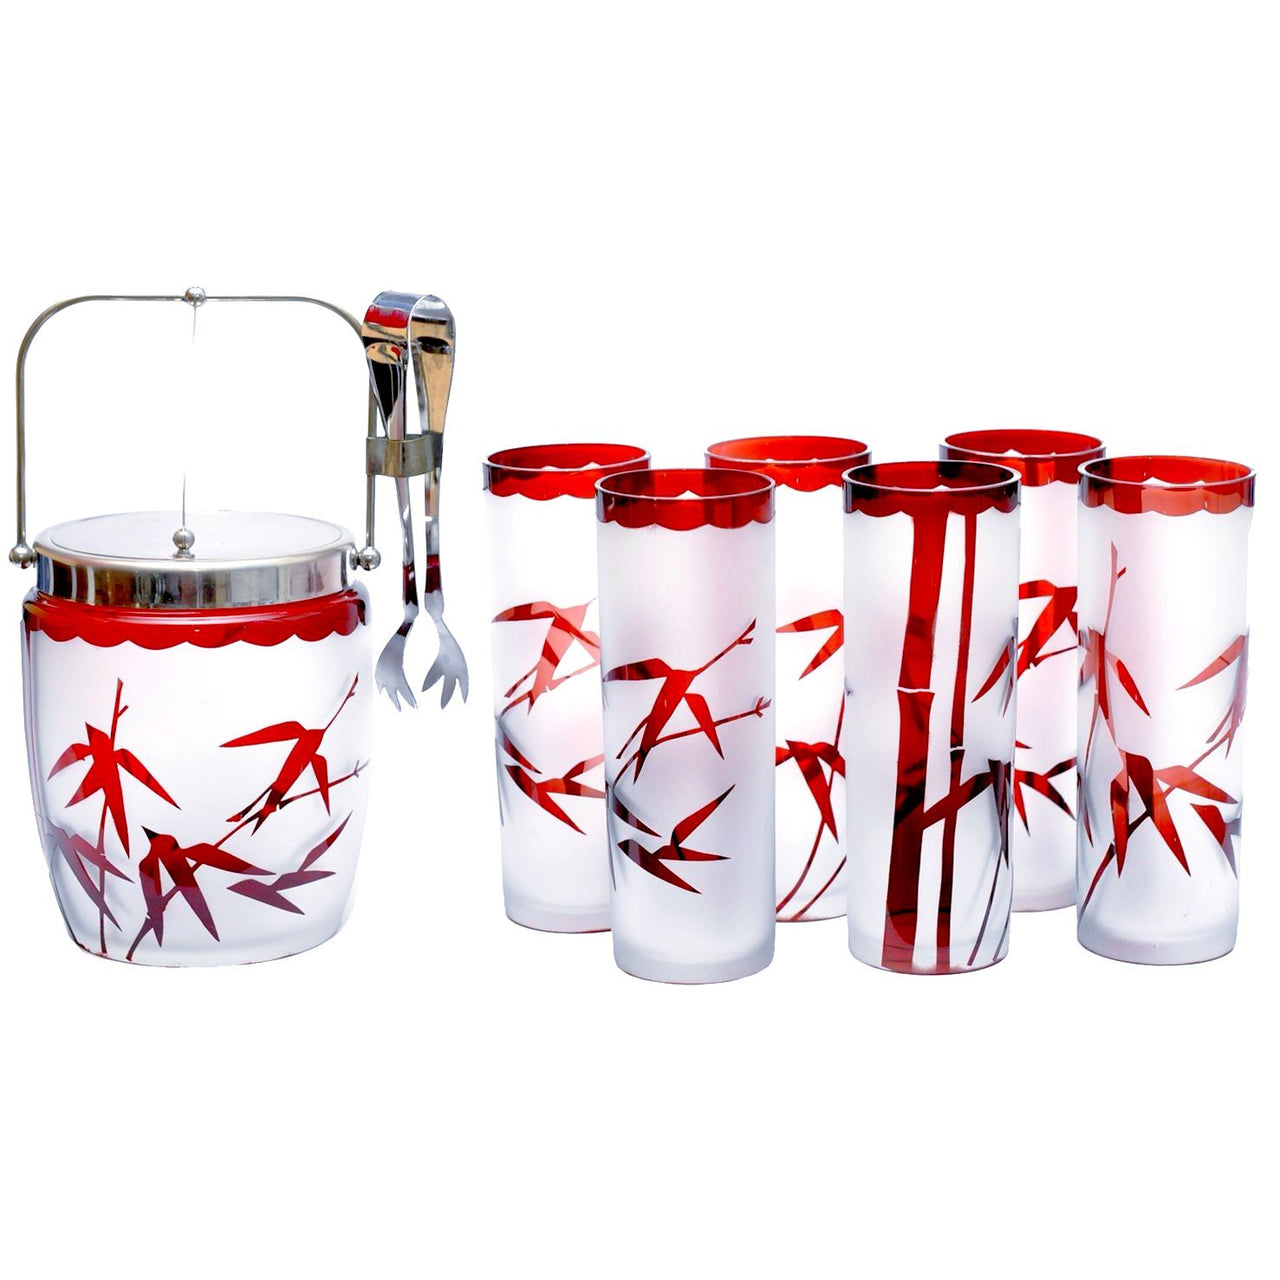 Vintage Ruby Red Bamboo Ice Bucket Bar Glass Set, The Hour Shop